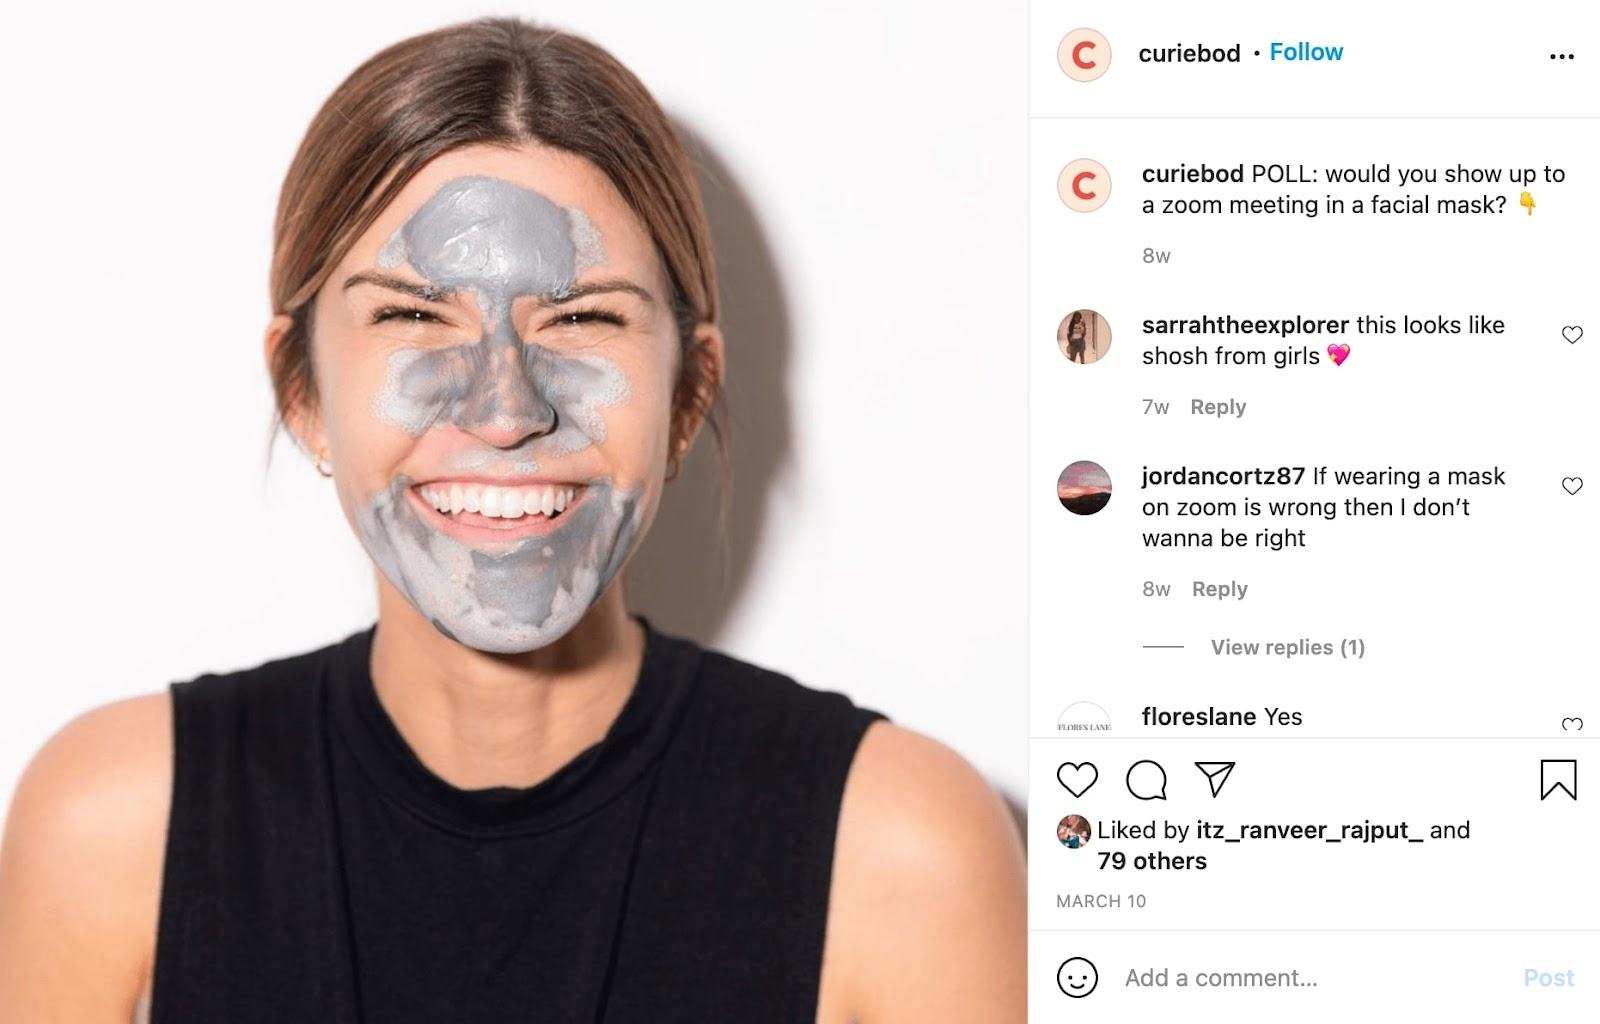 Instagram Post from Curie that features a woman with brown hair smiling. On her face is Curie's detox mask which is a grey mask covering her forehead, nose, and chin area.